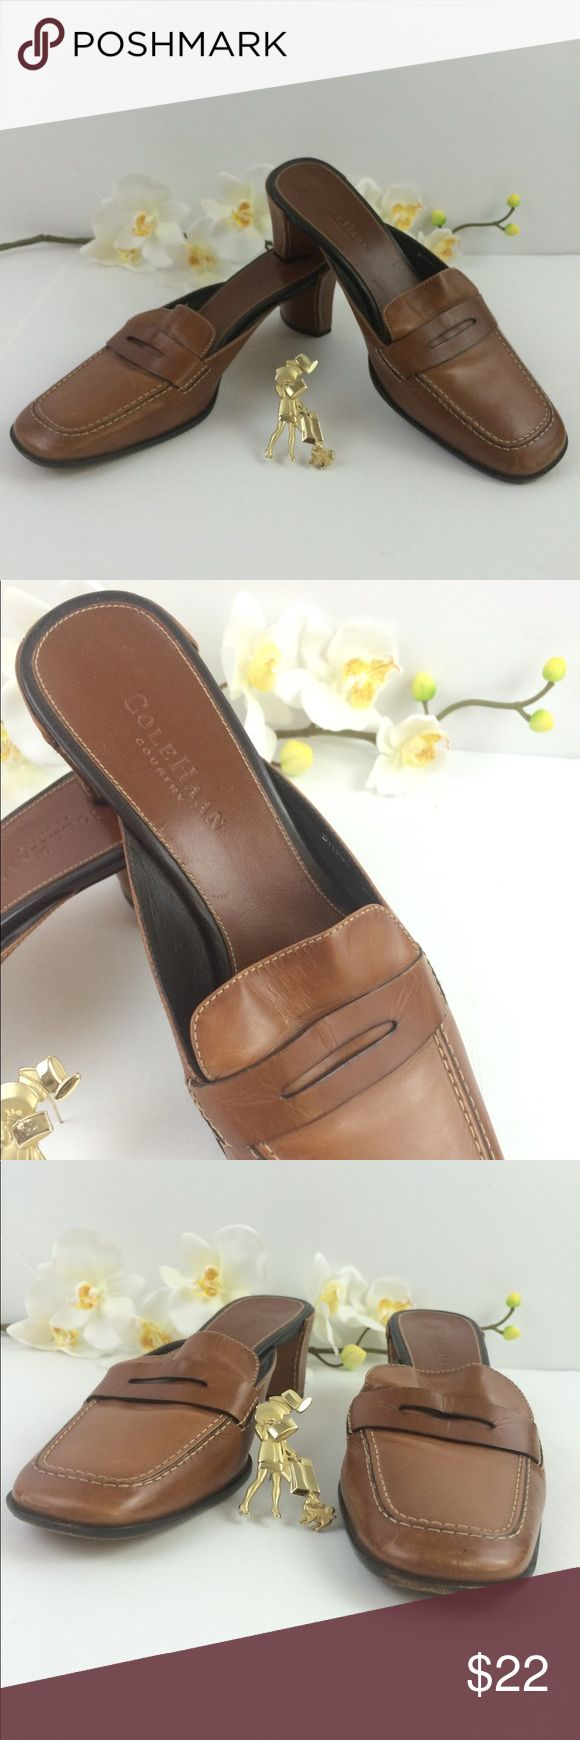 Cole Haan Country, mules shoes Sz 8.5 brown Cole Haan Country, mules shoes Sz 8.5 brown. Pre owned pre loved stores for awhile, please see pictures one shoe shows ware from storing not walking. Ask questions before buying please Cole Haan Shoes Mules & Clogs